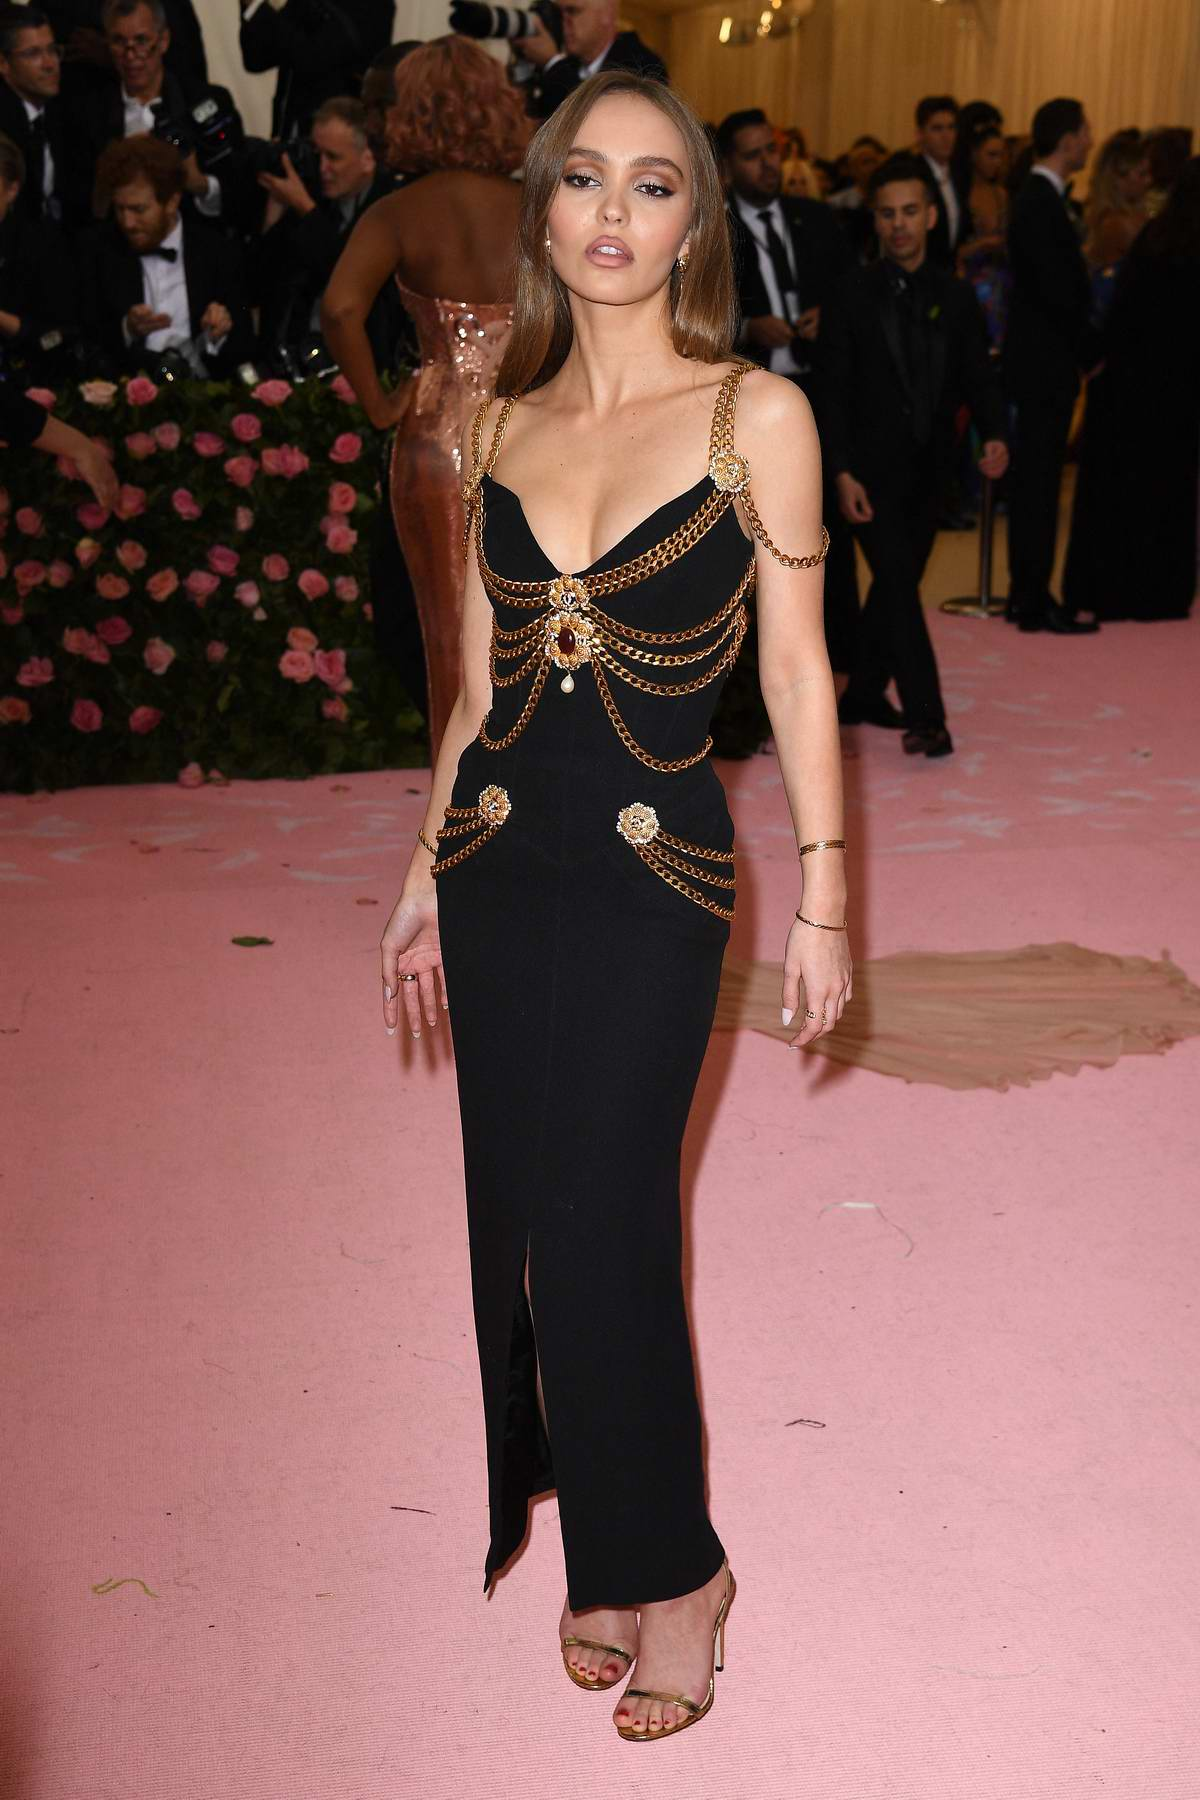 Lily-Rose Depp attends The 2019 Met Gala Celebrating Camp: Notes on Fashion in New York City